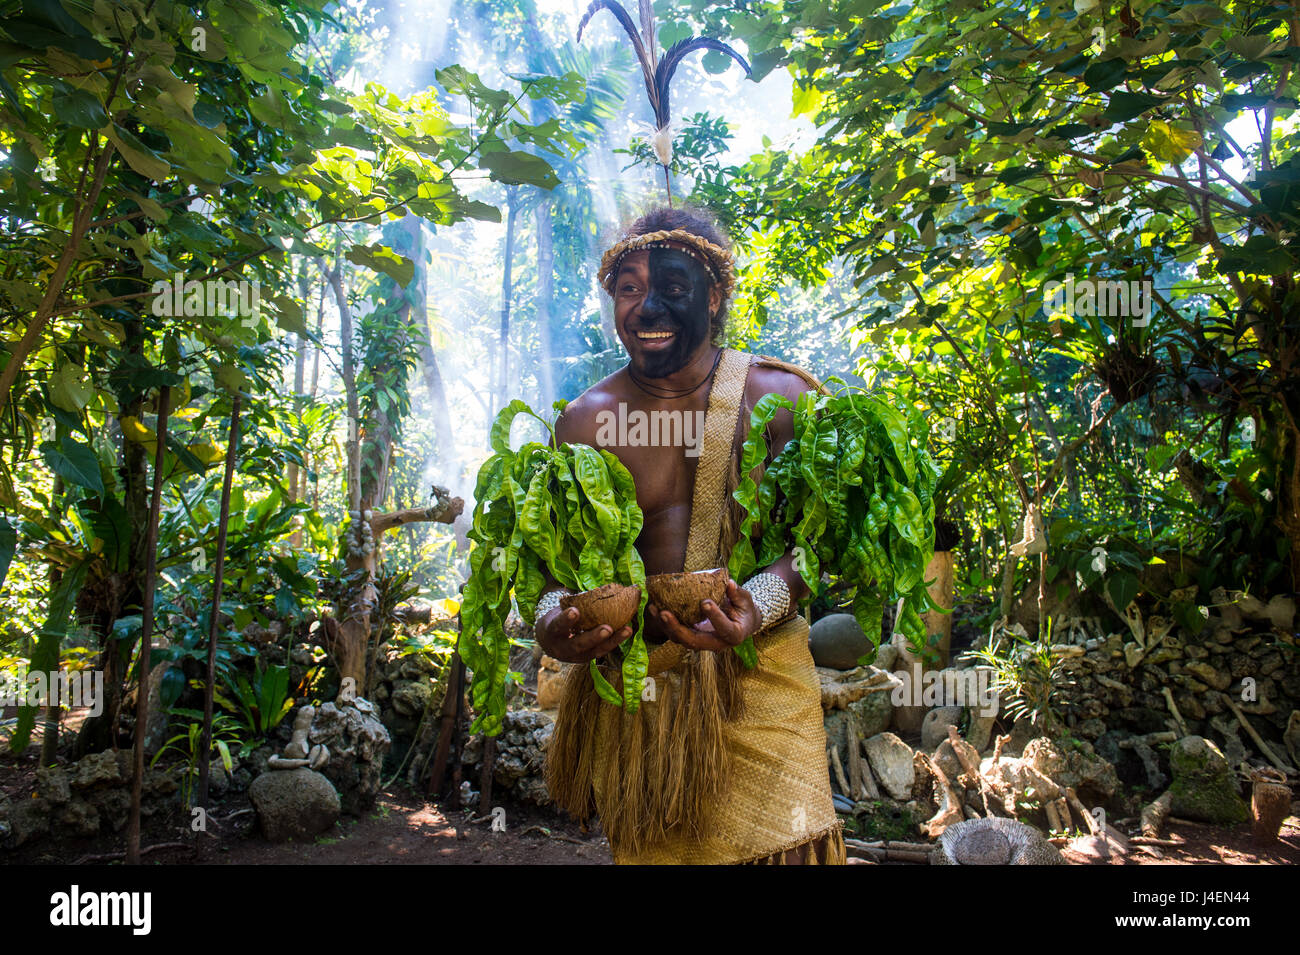 L'homme traditionnel habillé dans la jungle, Ekasup Village culturel, Efate, Vanuatu, Pacifique Photo Stock